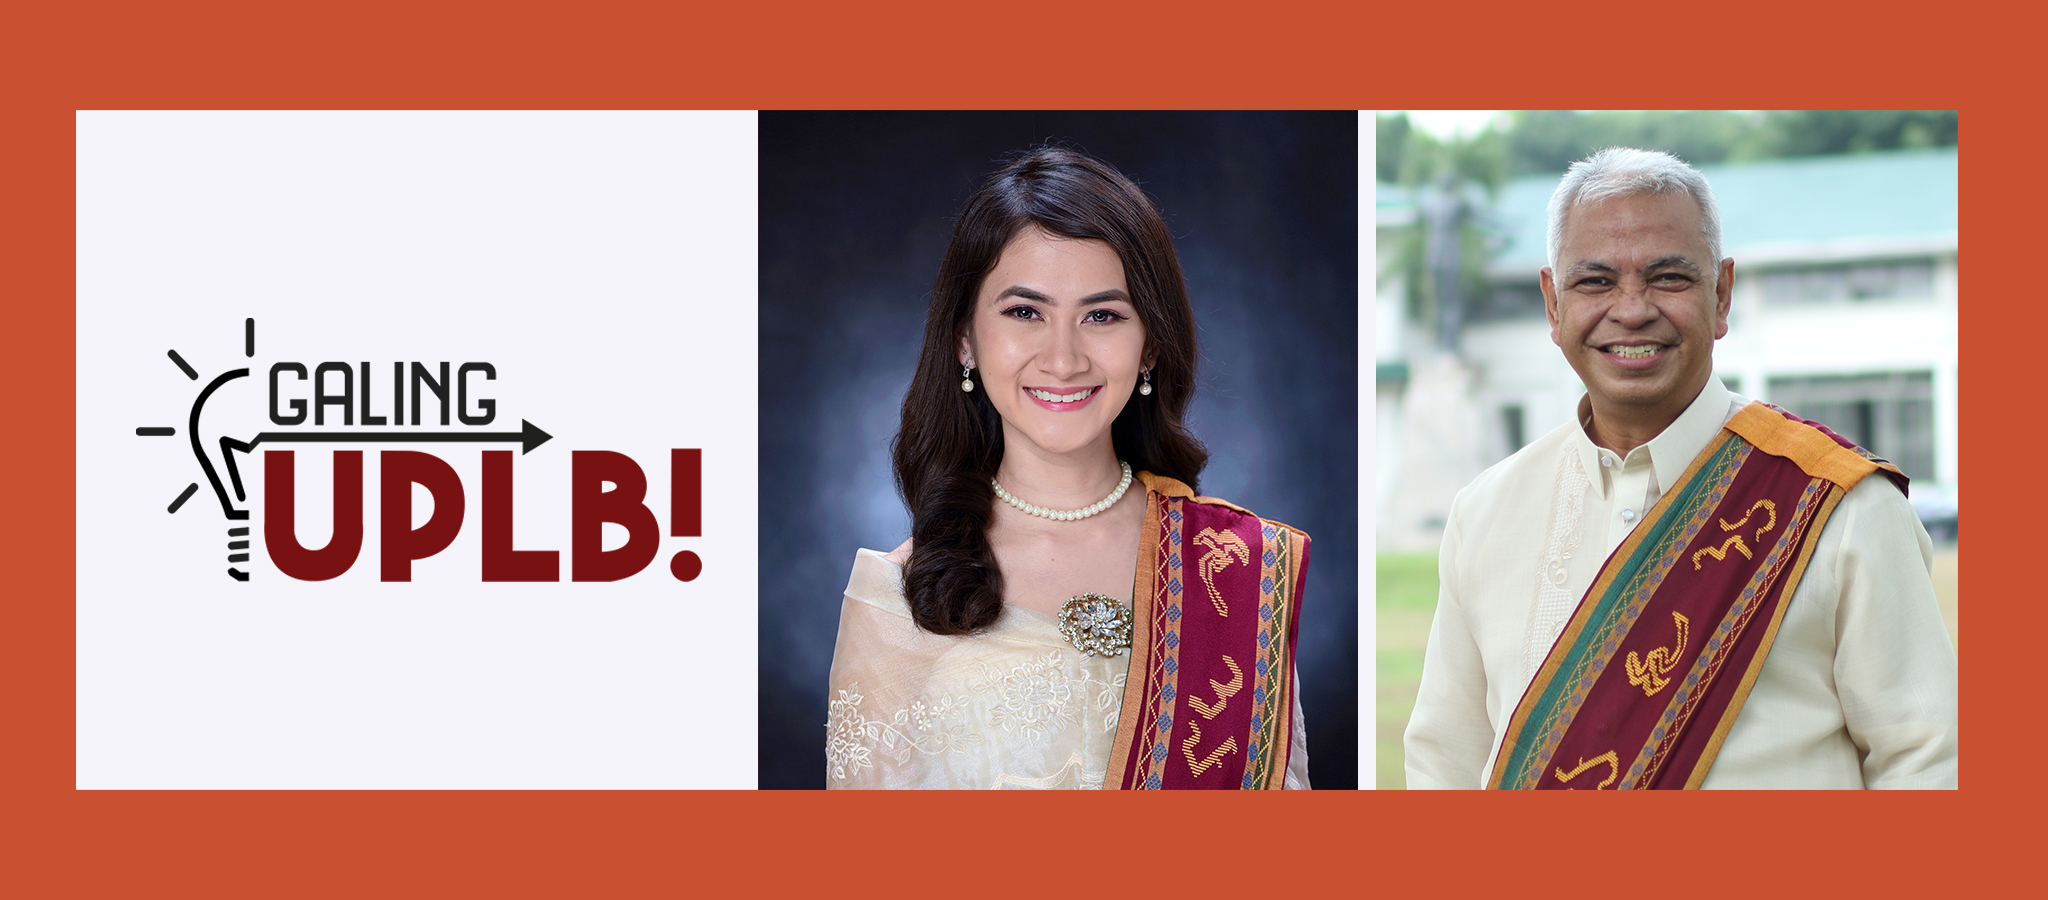 UPLB class '21 valedictorian and UPLB Community Chest featured on Galing UPLB